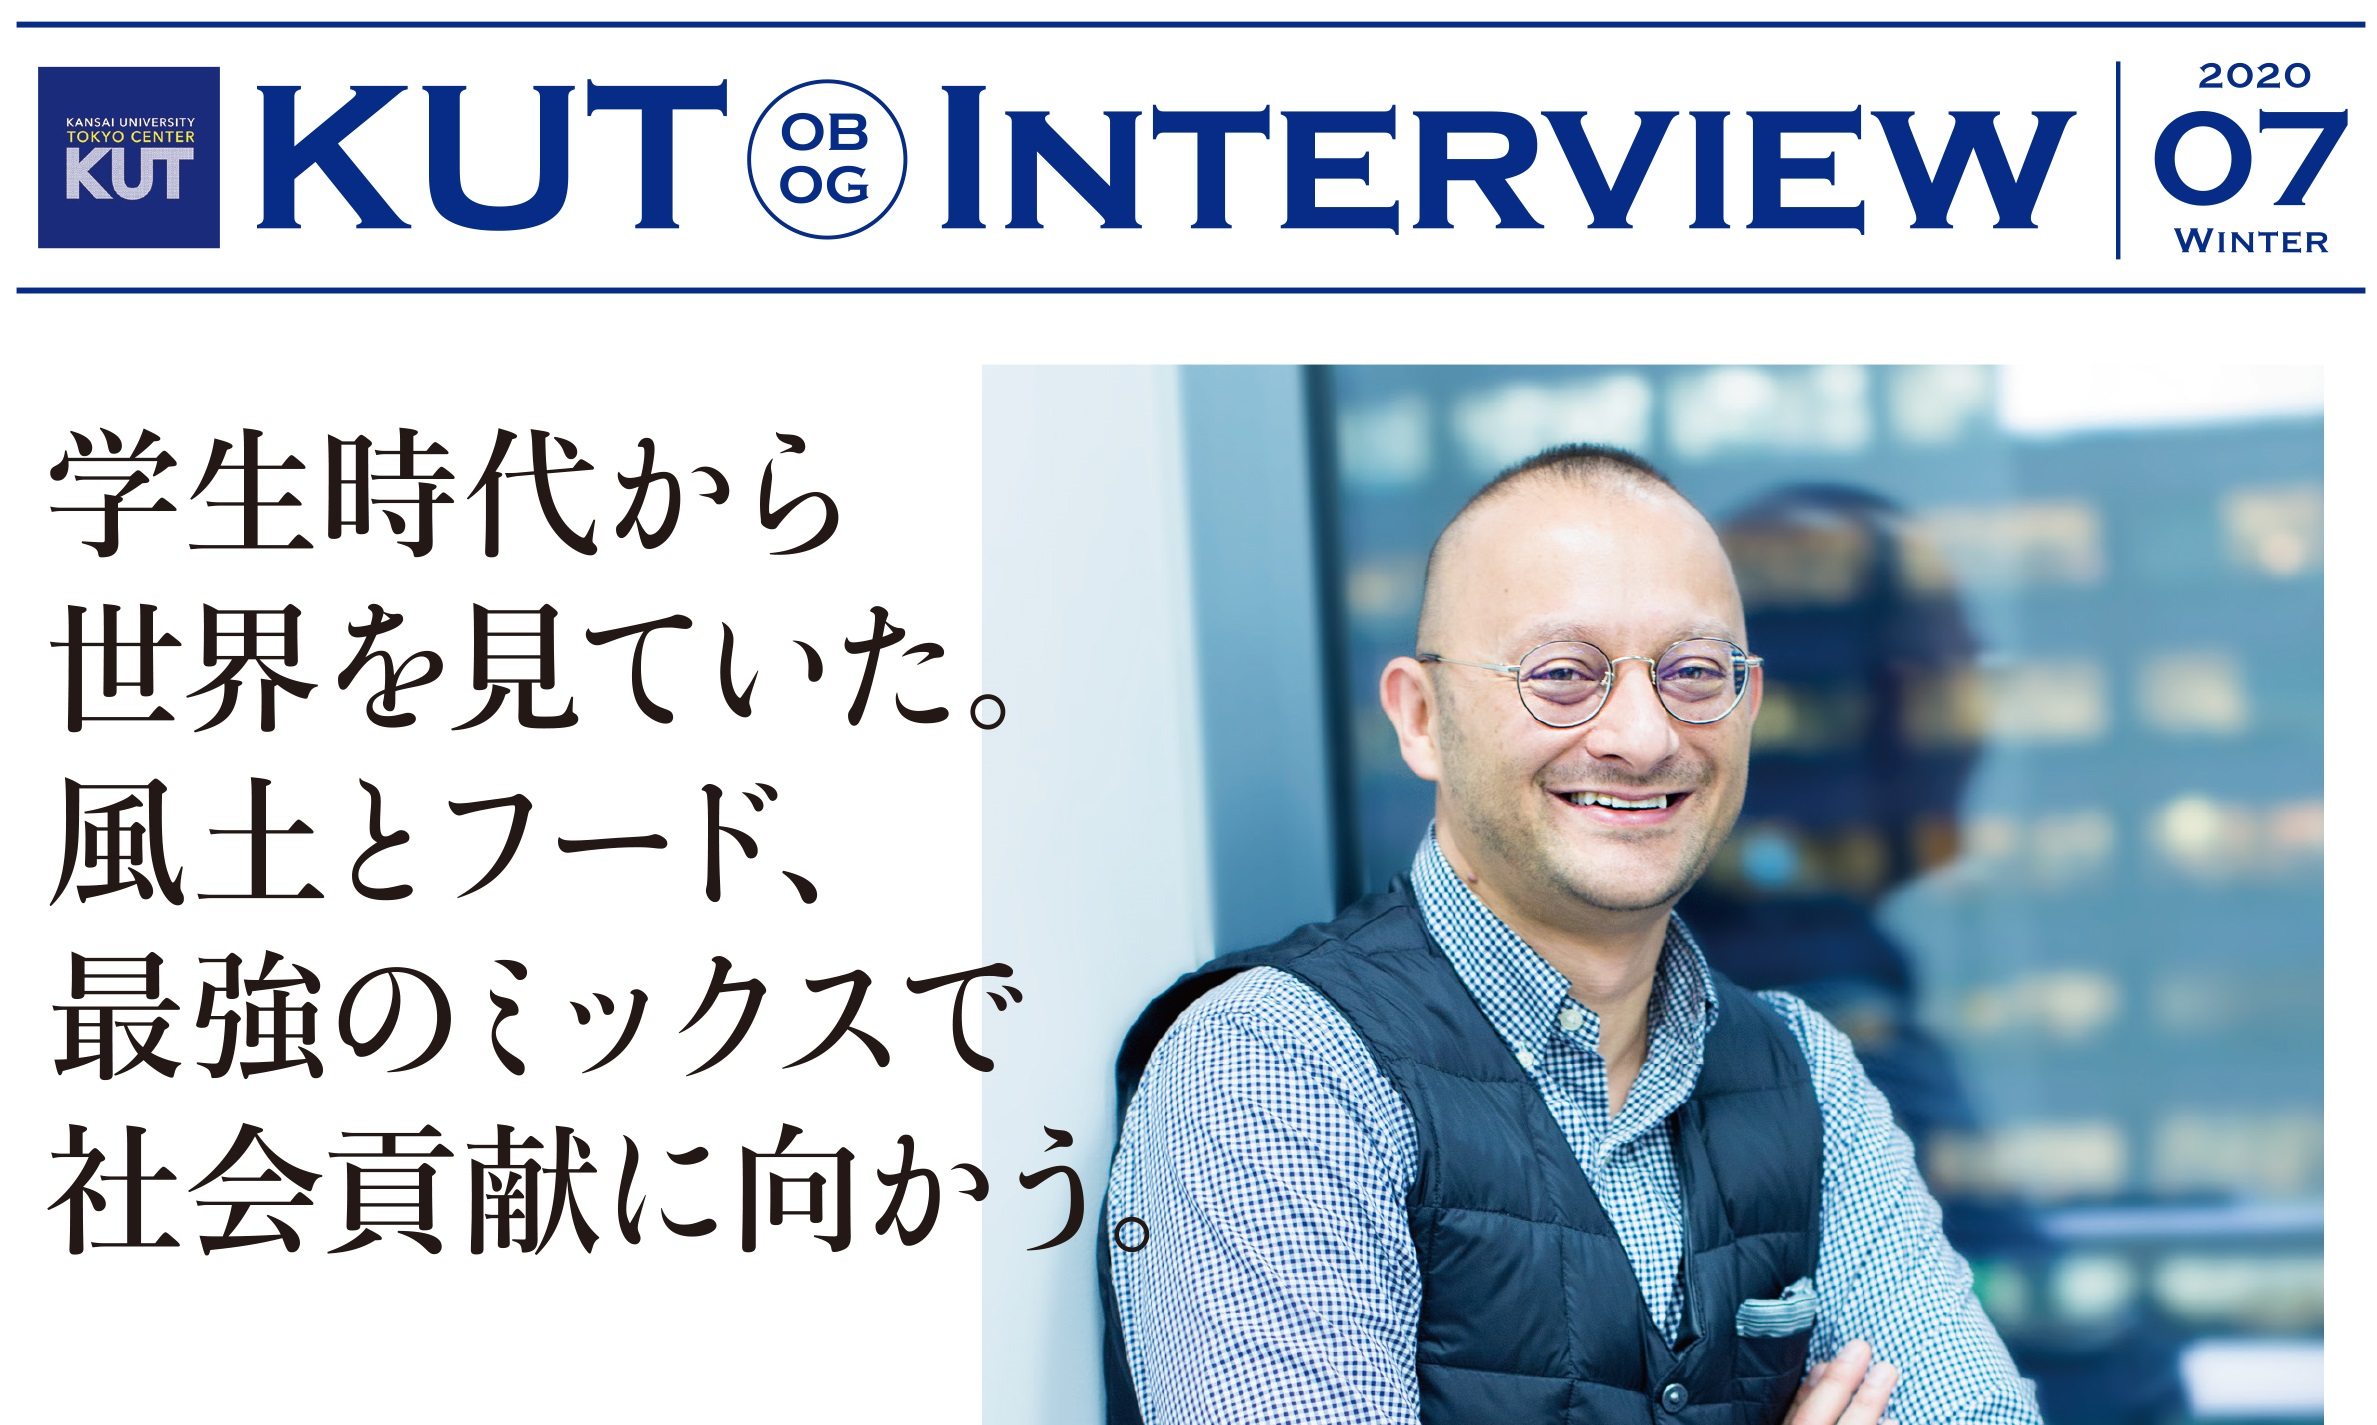 <KUT INTERVIEW 第7号> 首都圏で活躍する卒業生をご紹介します